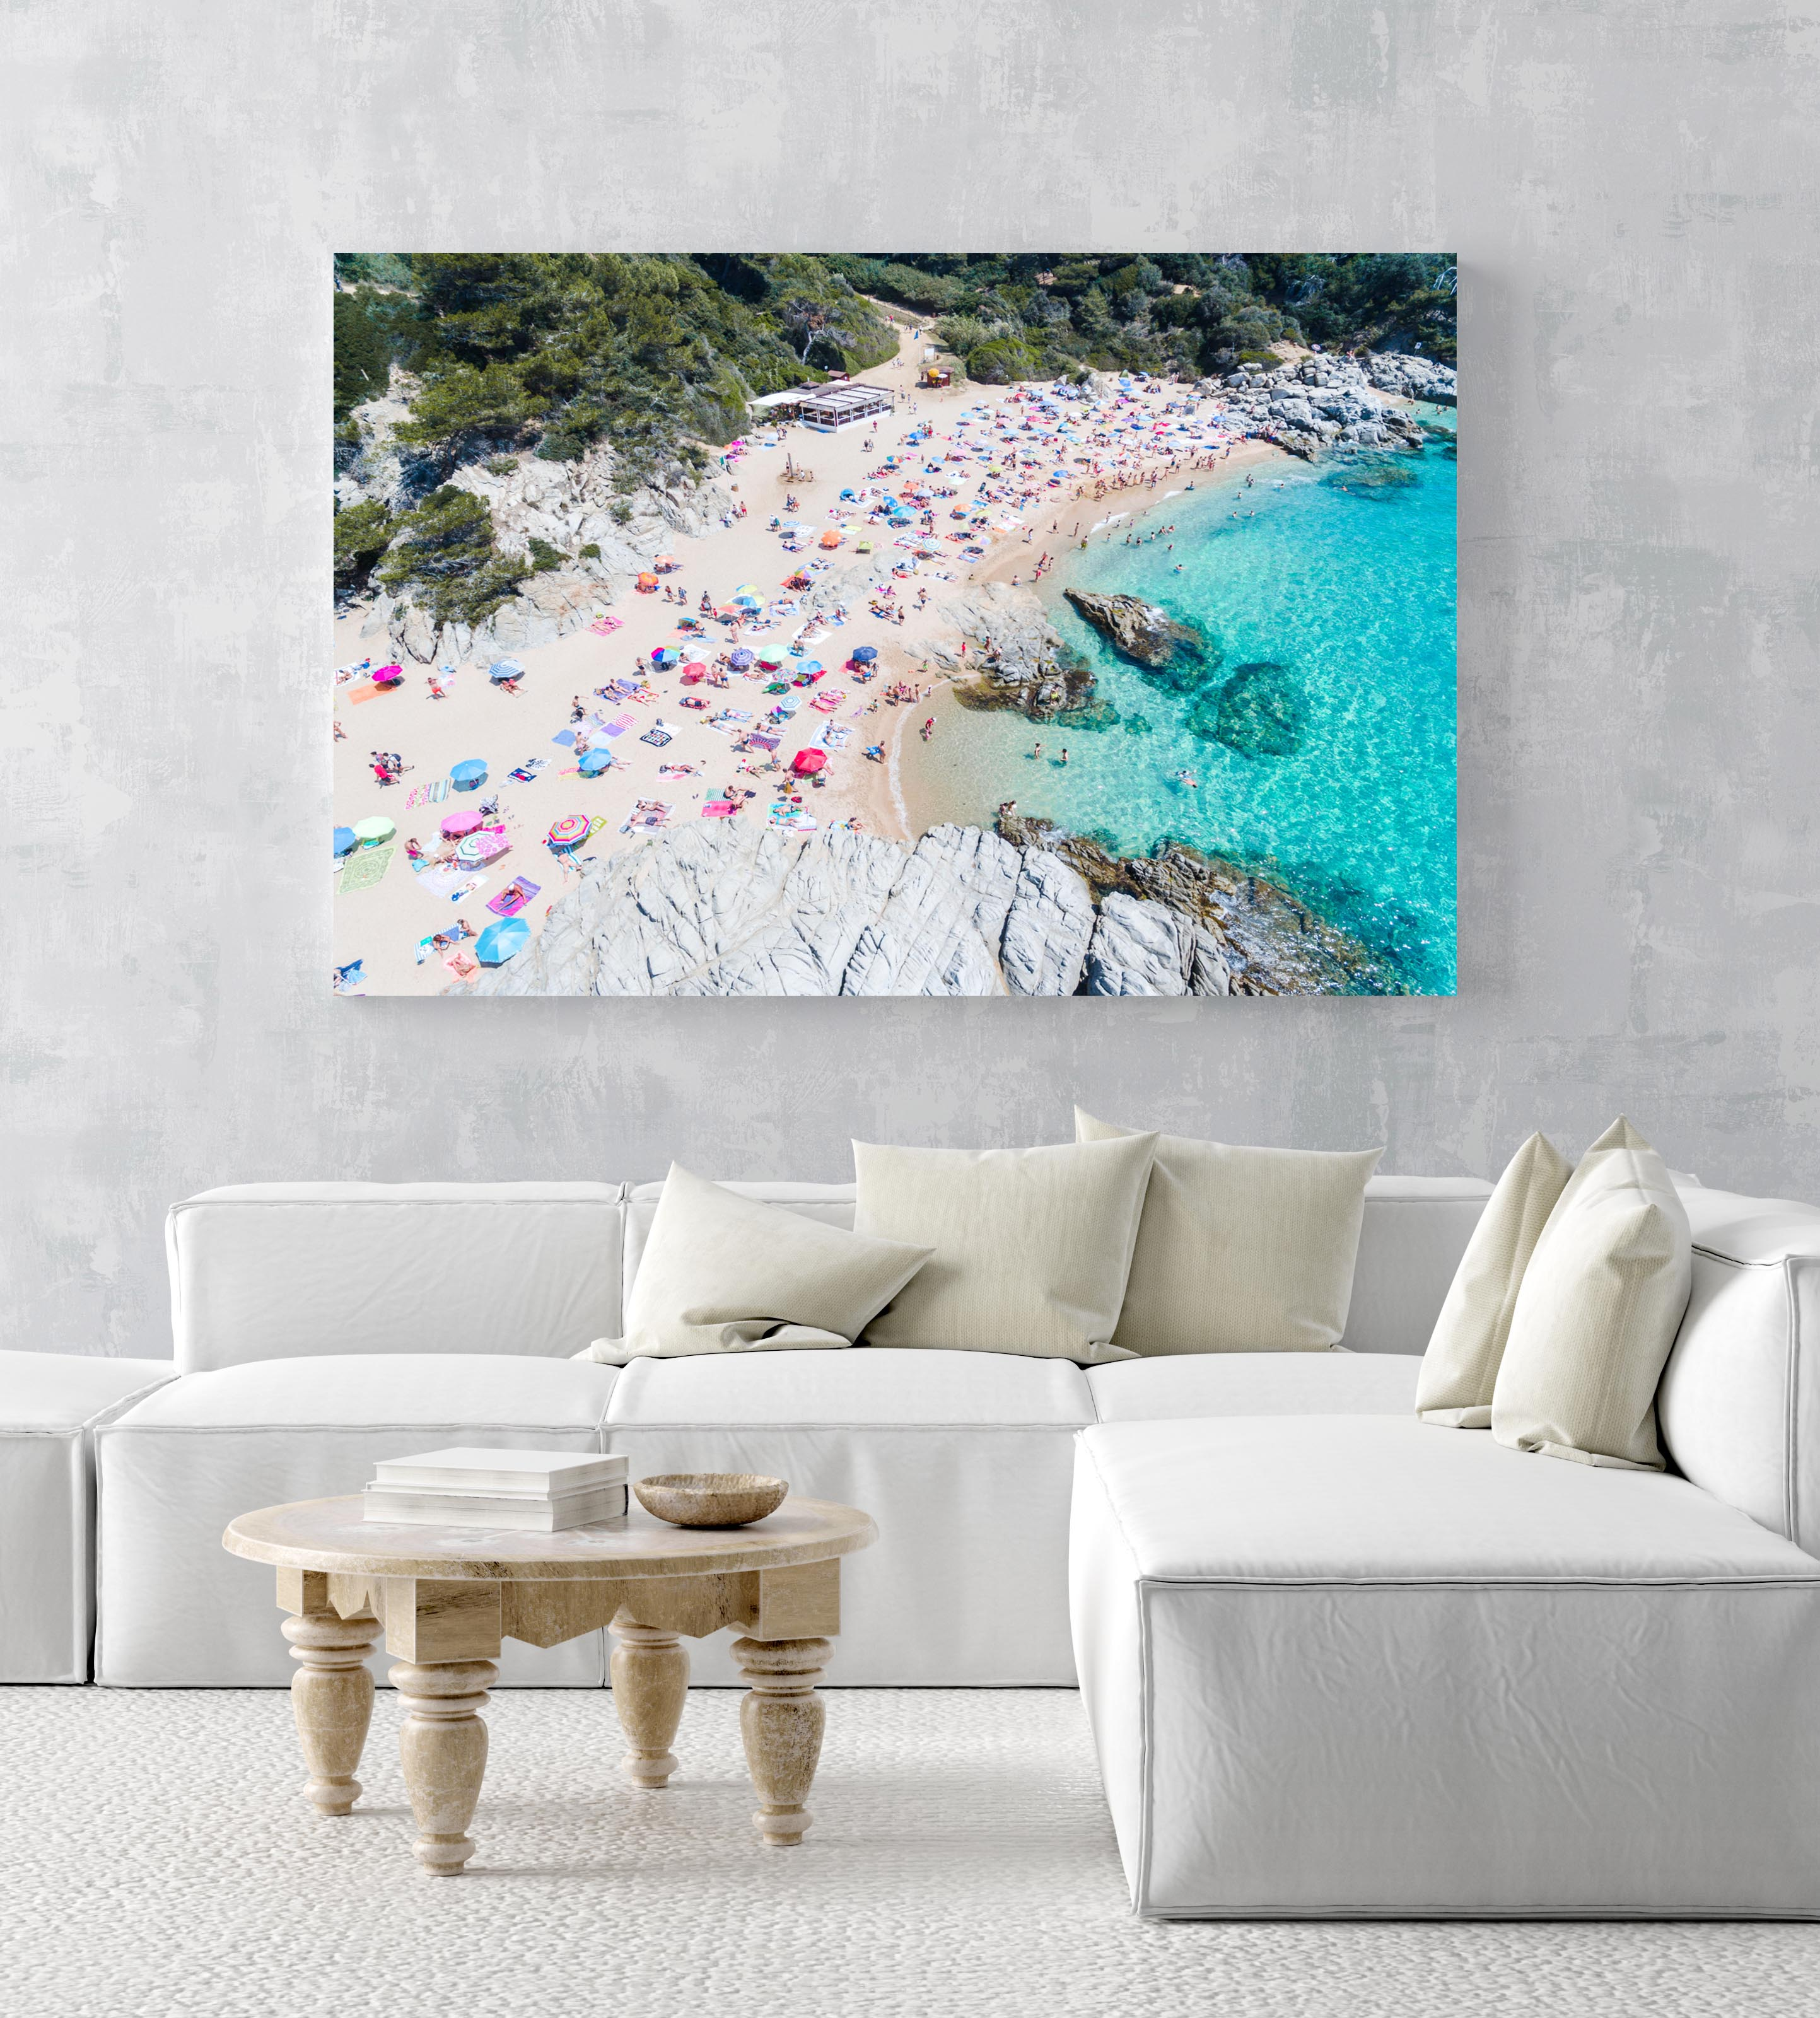 Busy beach full of people and umbrellas in Costa Brava in an acrylic/perspex frame